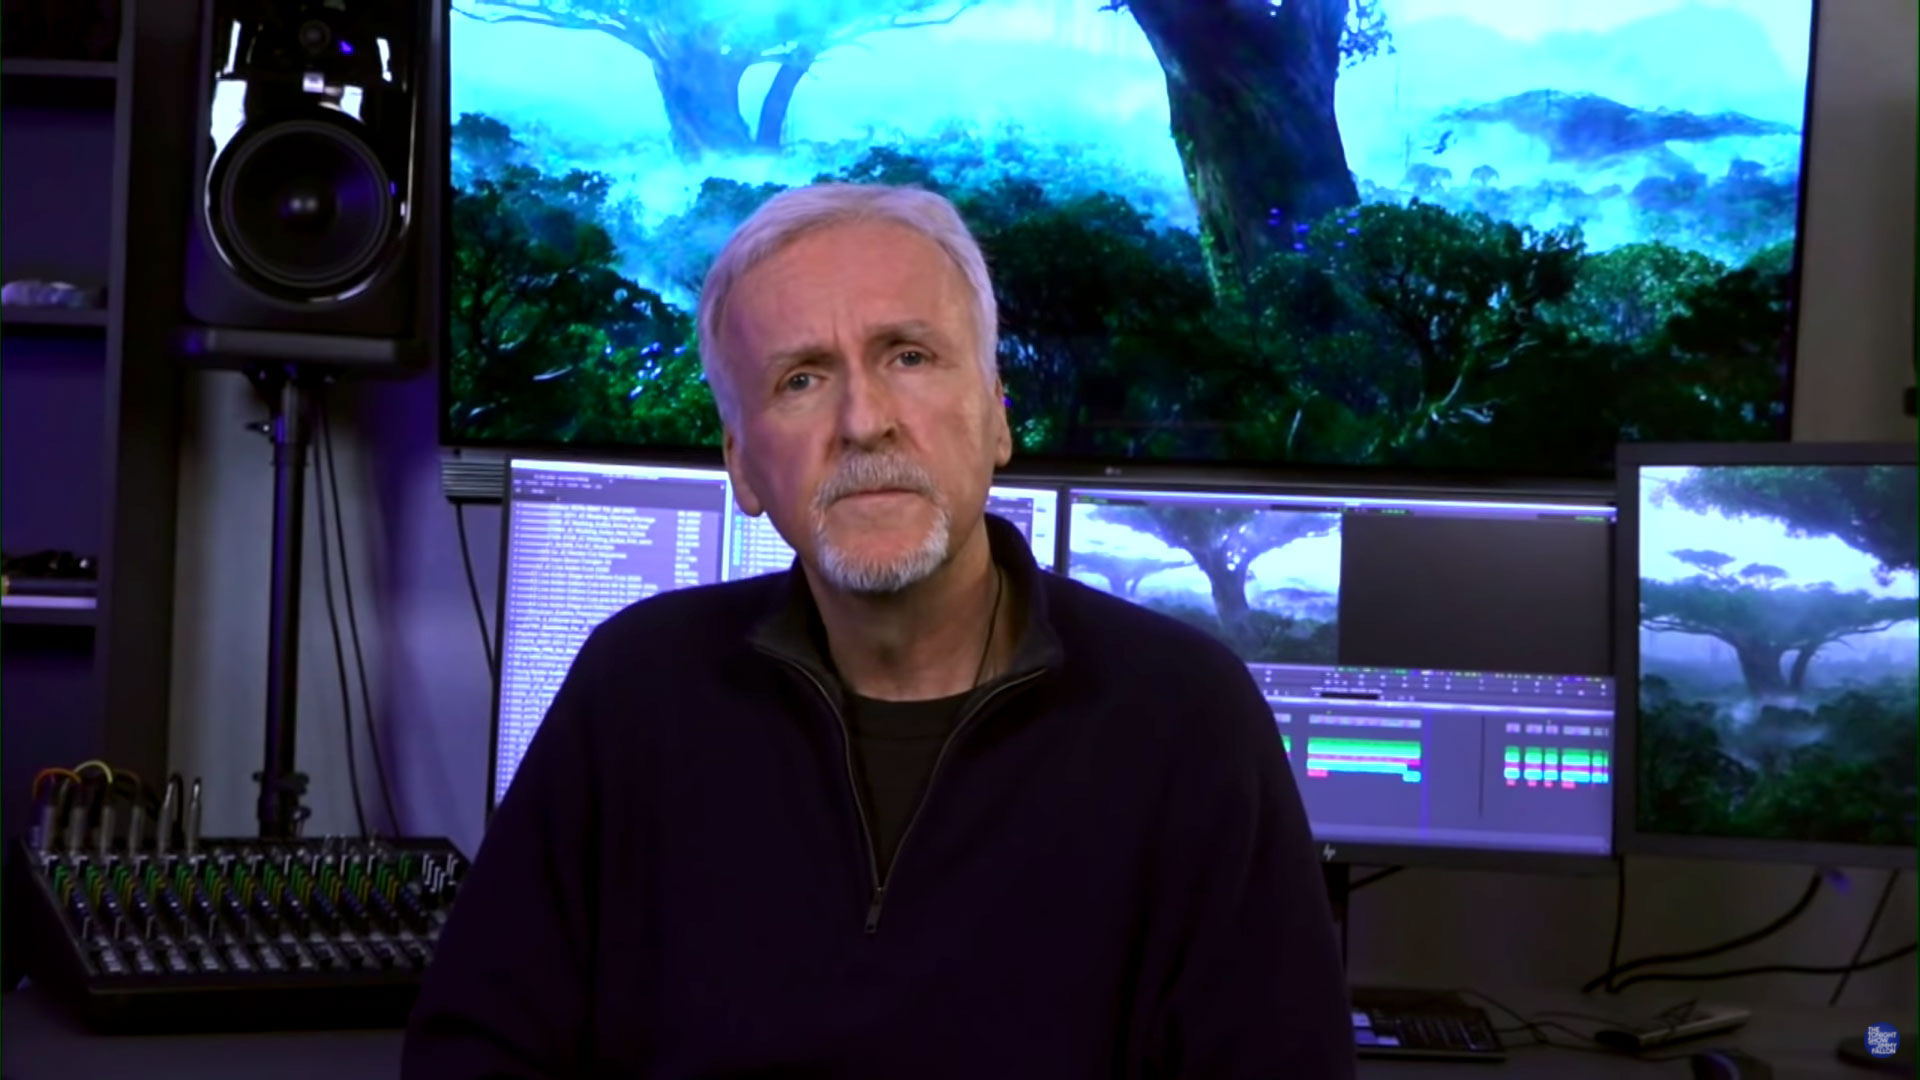 James Cameron says the next 'Avatar' movie will have more water